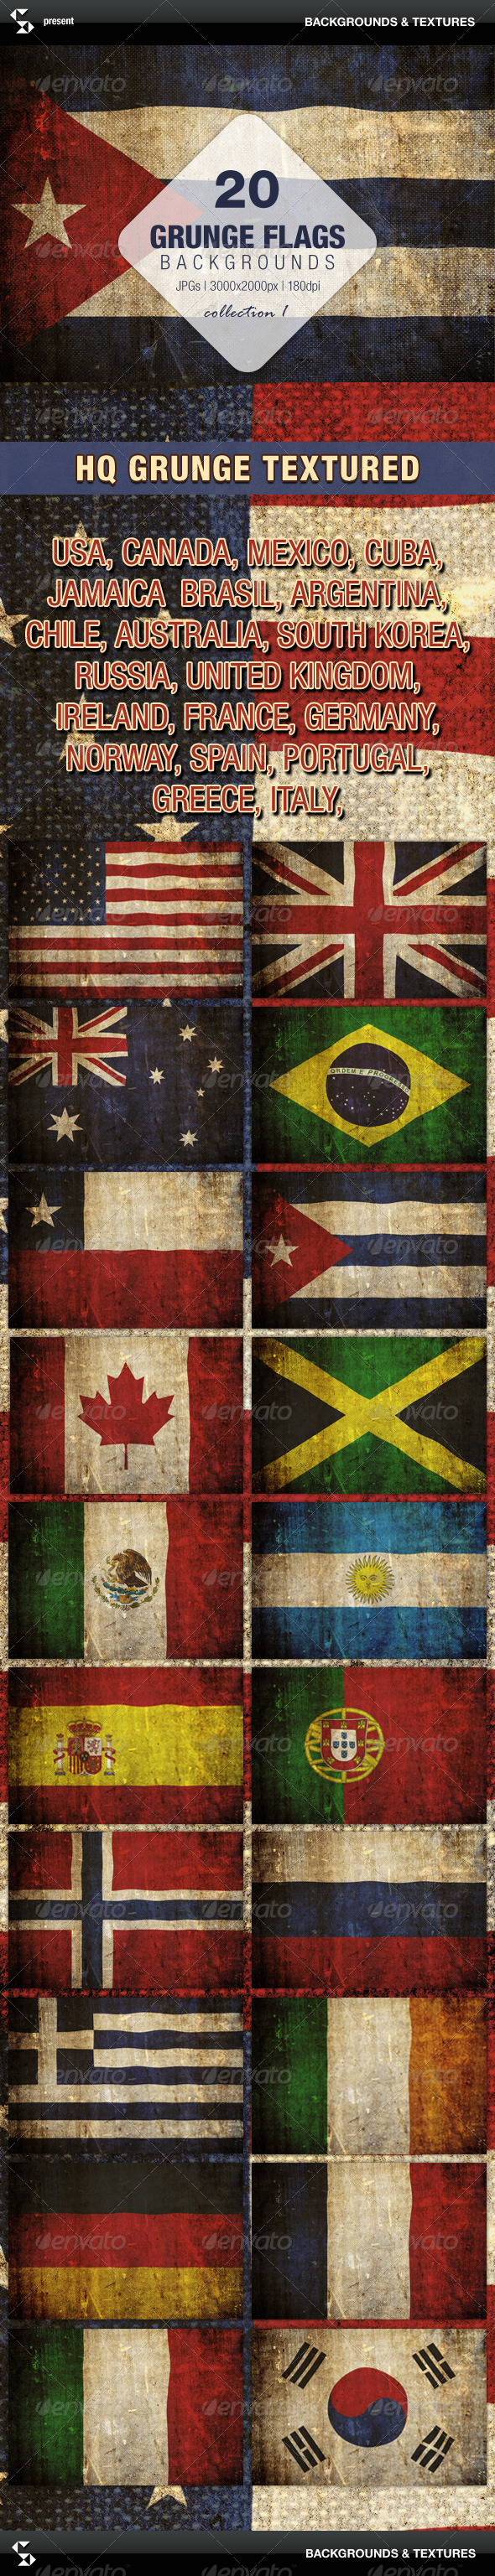 Grunge Flags - 20 countries around the world  - Urban Backgrounds